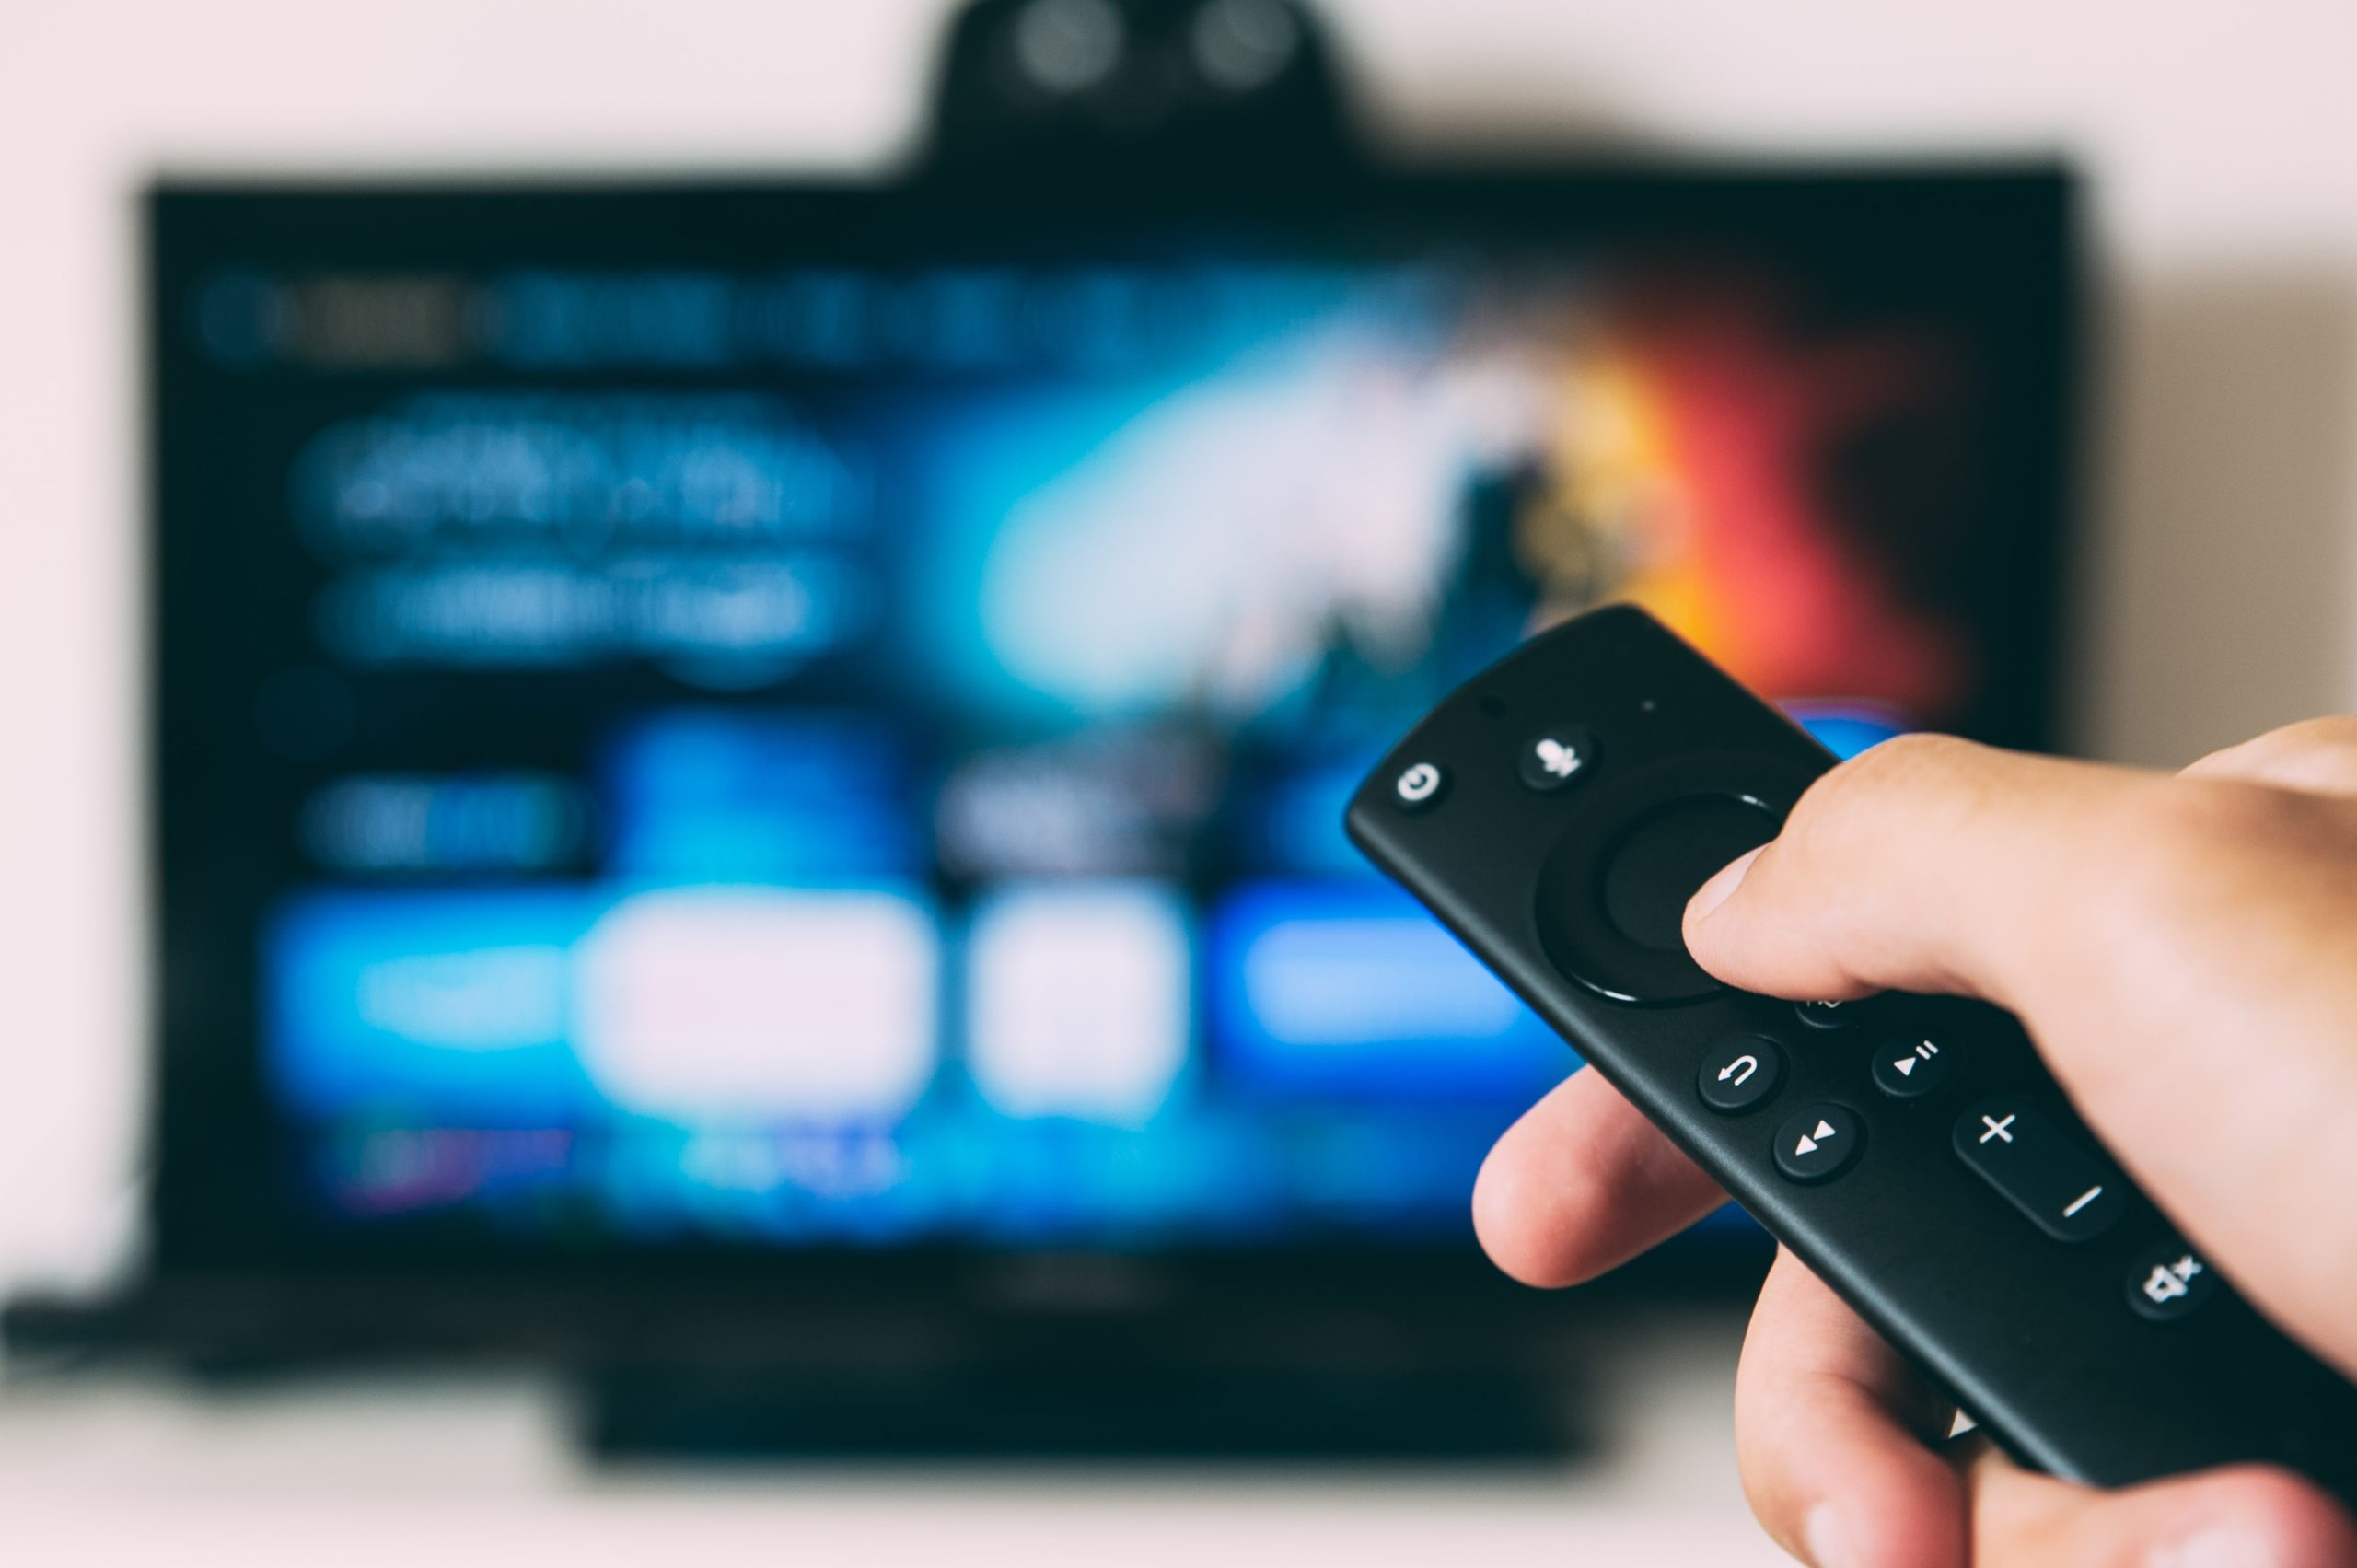 Hand holding a TV Streaming remote